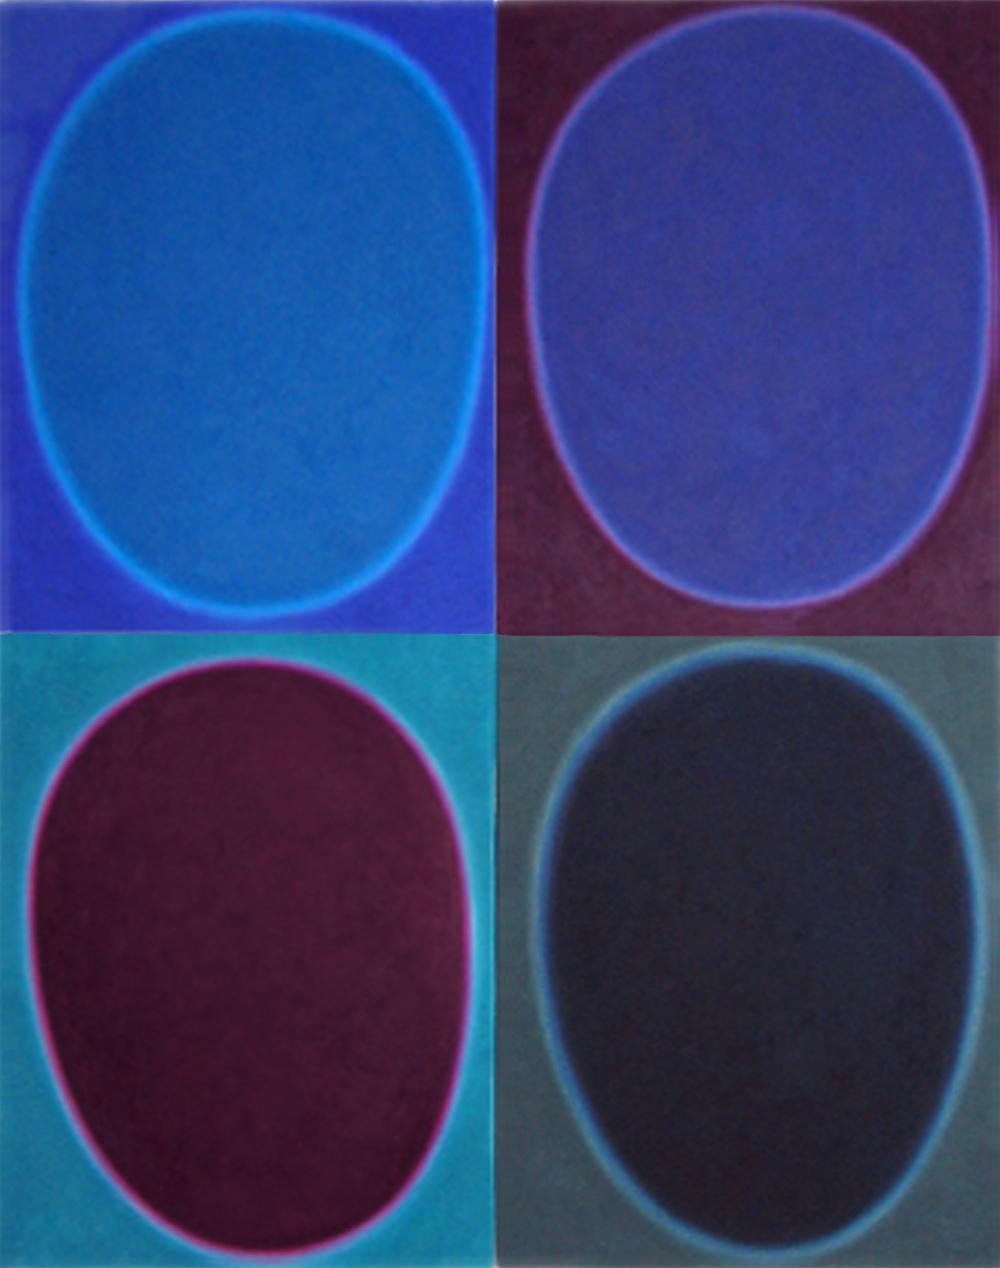 "Silent 16, oil on canvas, 2004, series of 4 panels W24"" x H36"" each, total format W48"" x H72"". Private collection."